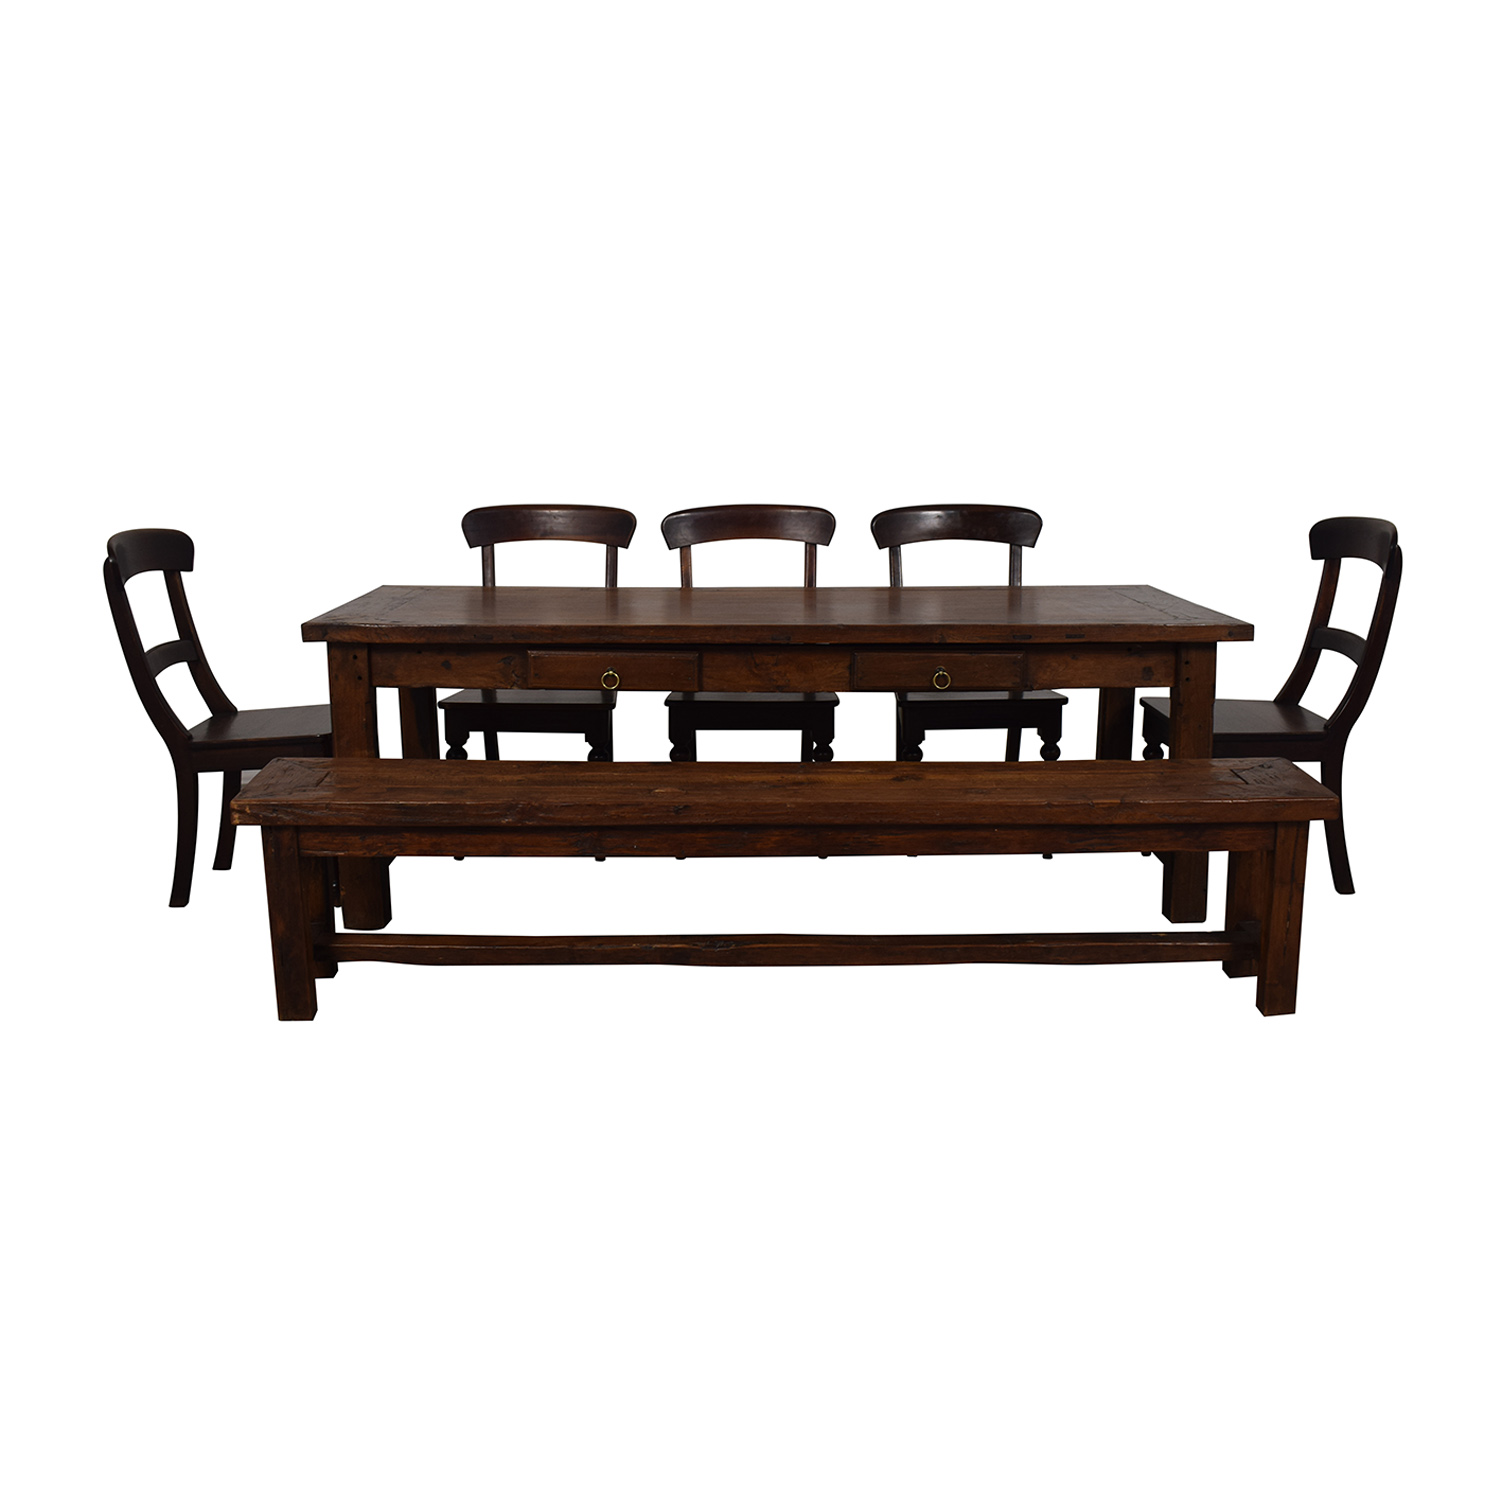 buy Crate & Barrel Extendable Dining Set with Bench Crate & Barrel Dining Sets